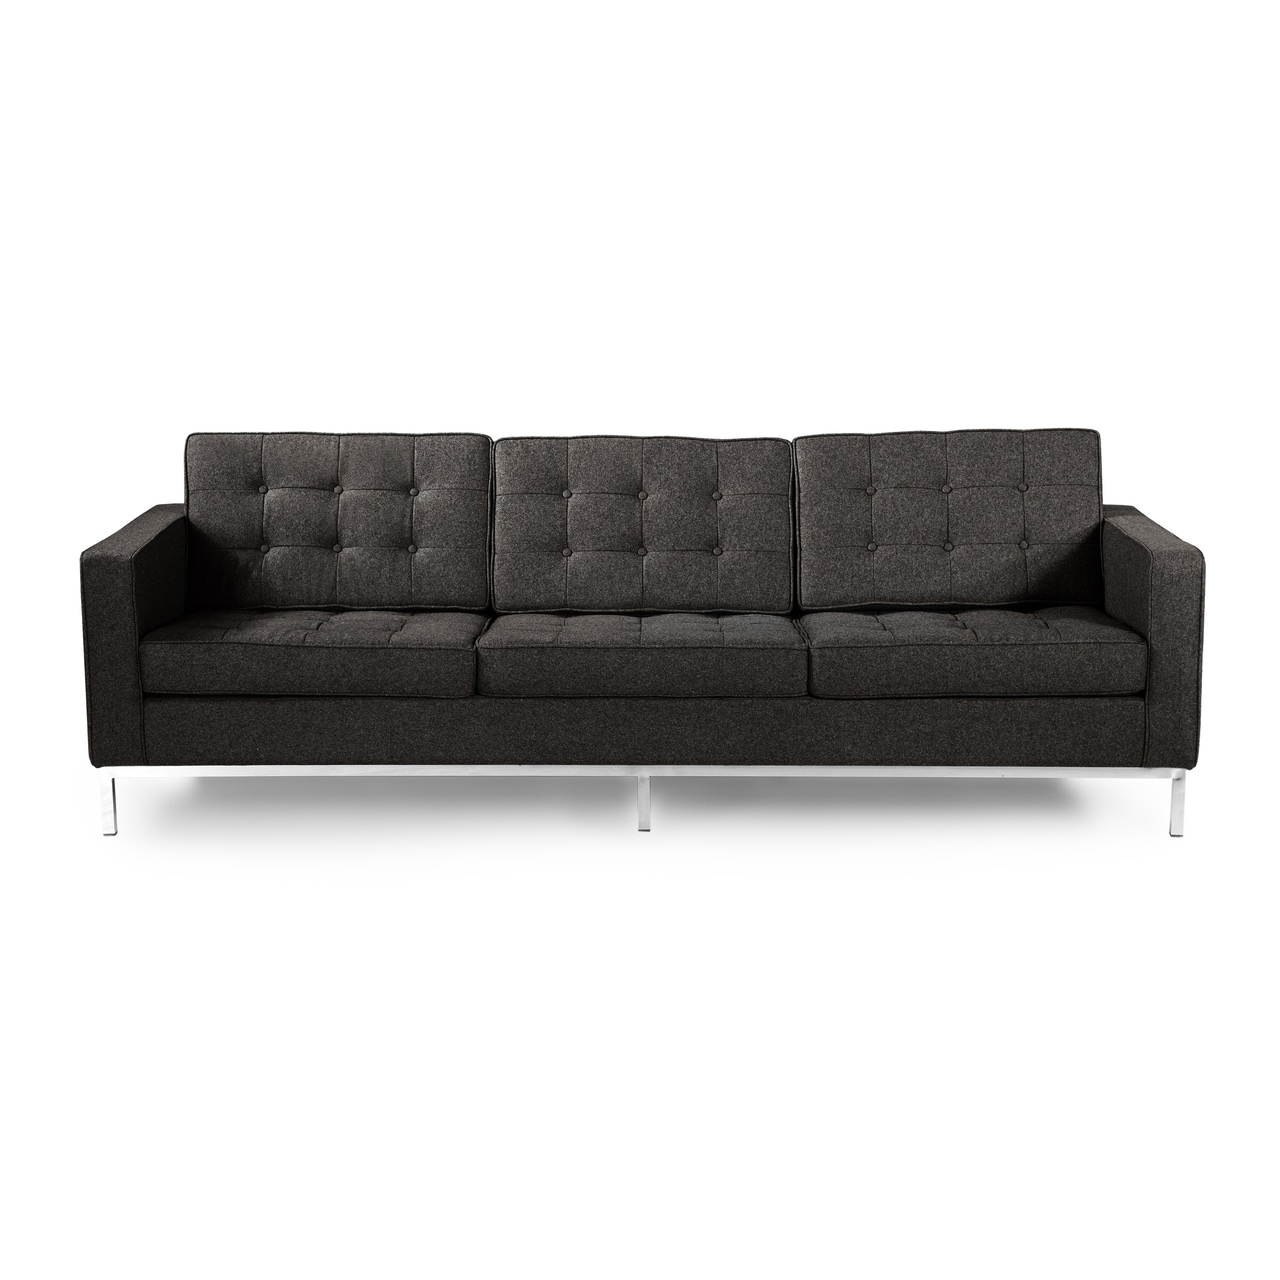 Favorite Kardiel Florence Knoll Style 3 Seat Sofa, Cashmere Wool – Free Within Florence Knoll Leather Sofas (View 4 of 20)